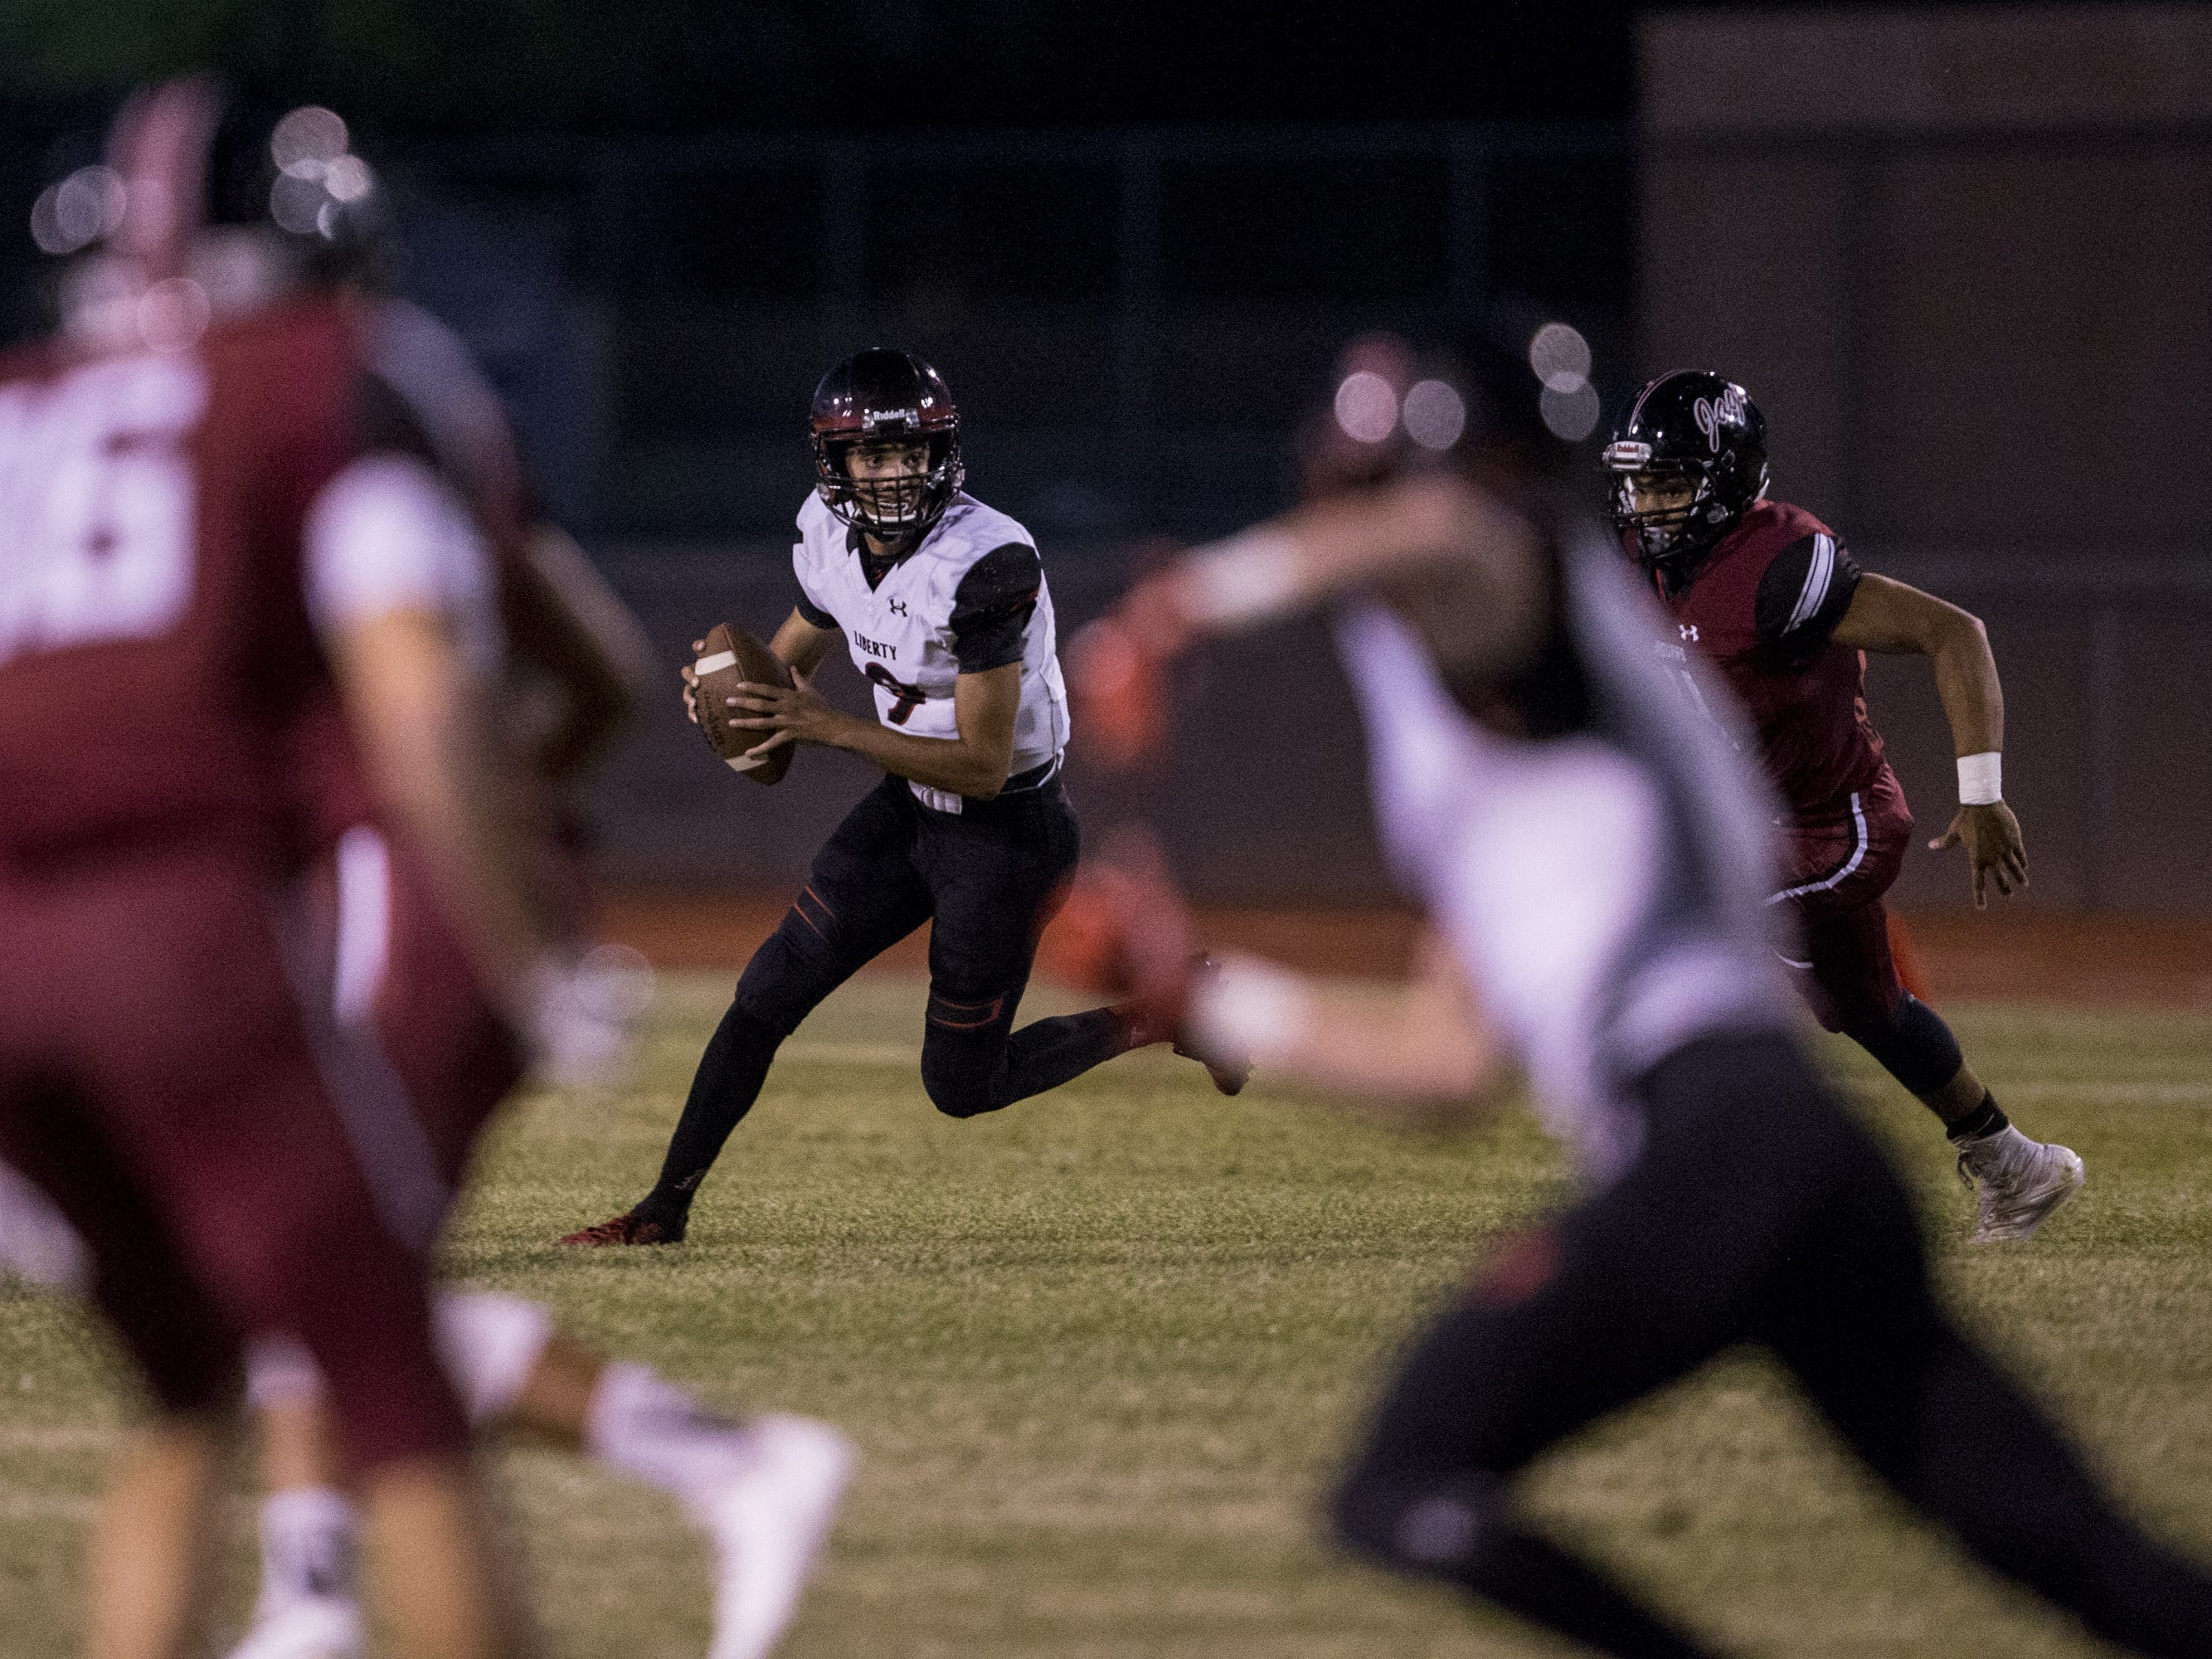 Liberty's Jonah Guevara looks to pass against Desert Ridge in the 1st quarter on Friday, Sept. 7, 2018, at Desert Ridge High School in Mesa, Ariz.  #azhsfb